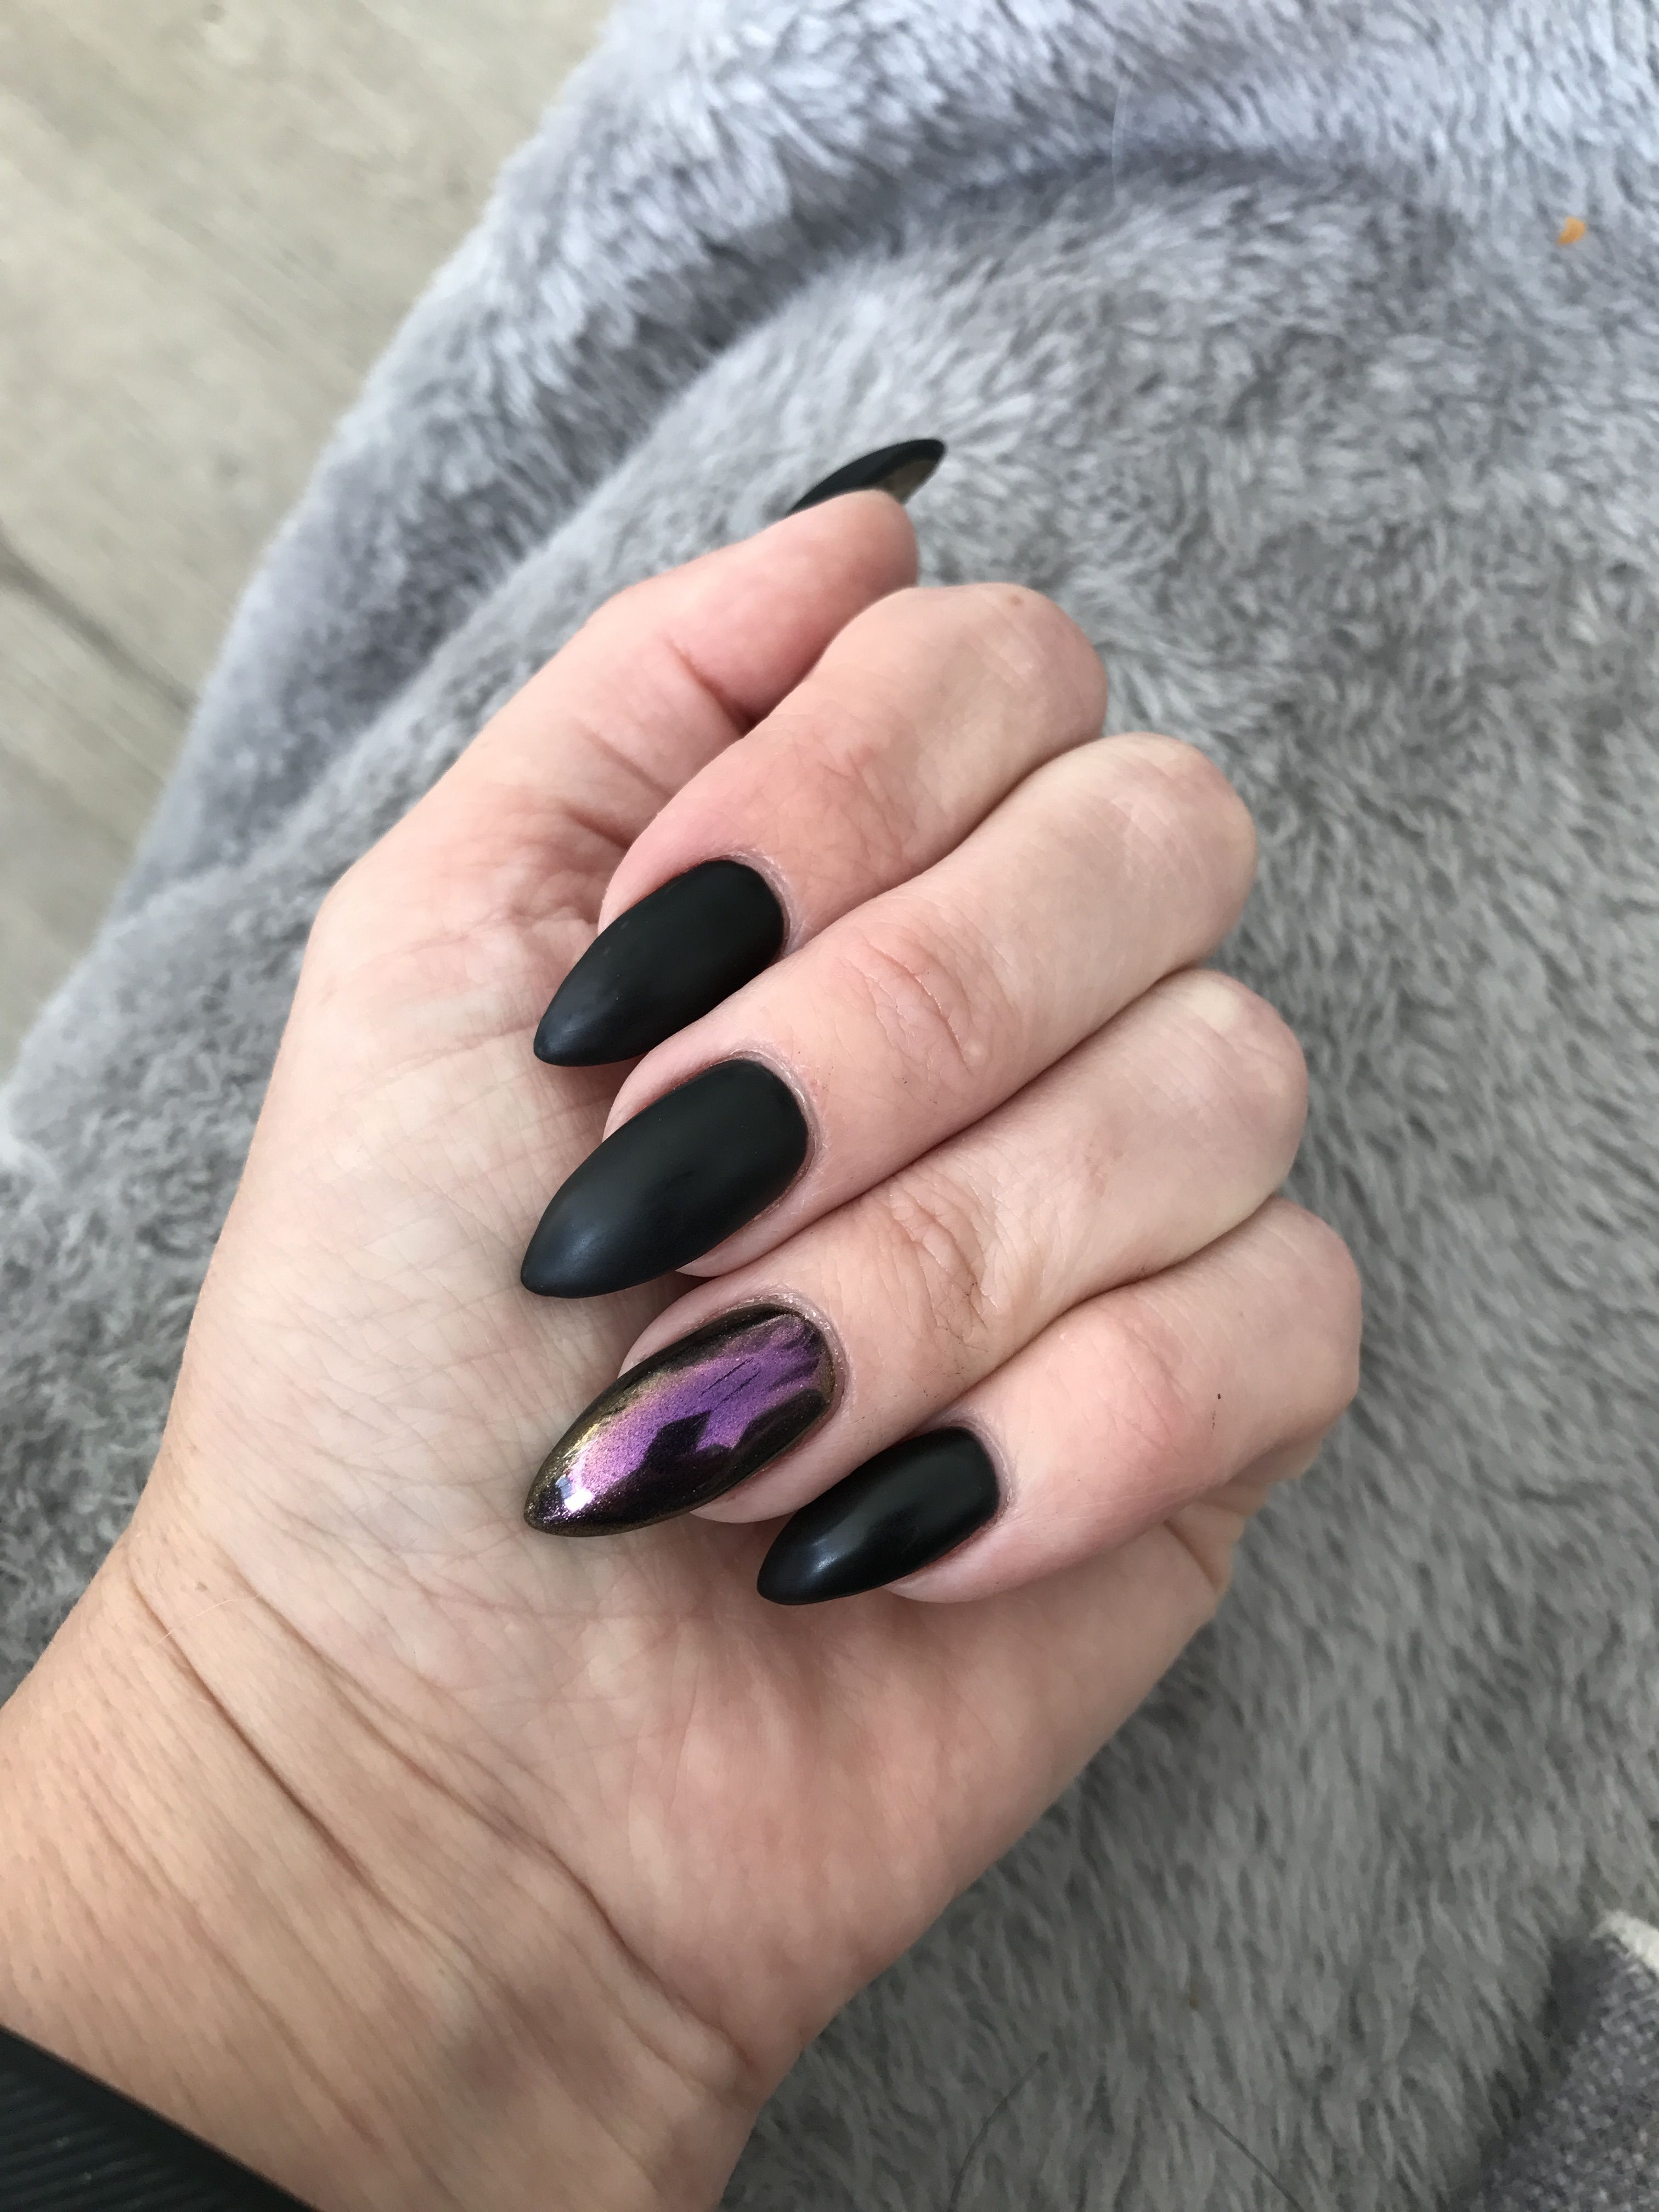 Matte black and chrome nails | Makeup and nails | Pinterest | Chrome ...